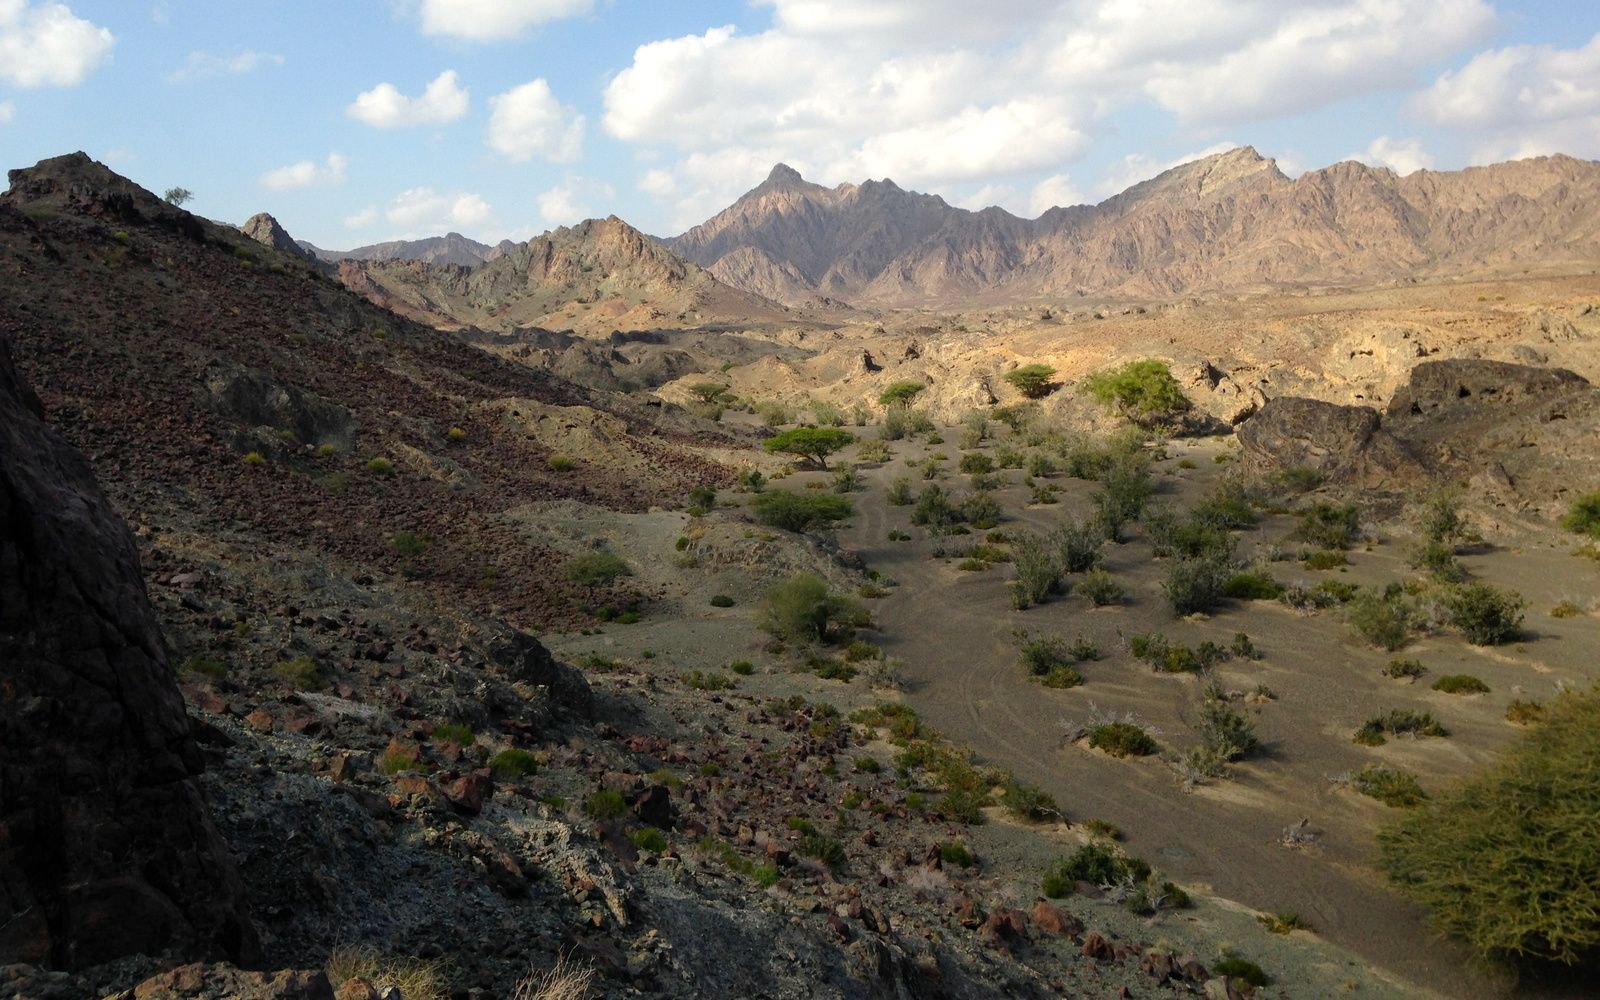 Oman field trip: Part 3